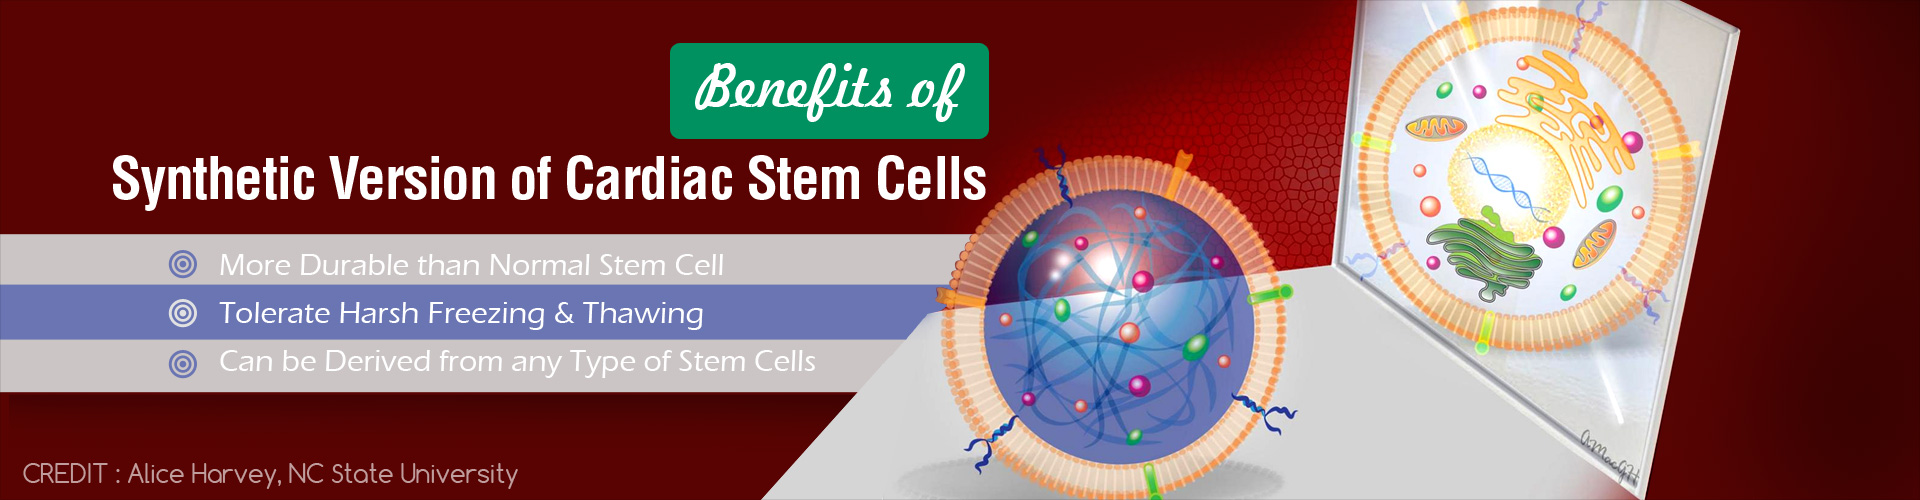 Novel Discovery of Synthetic Cardiac Stem Cells